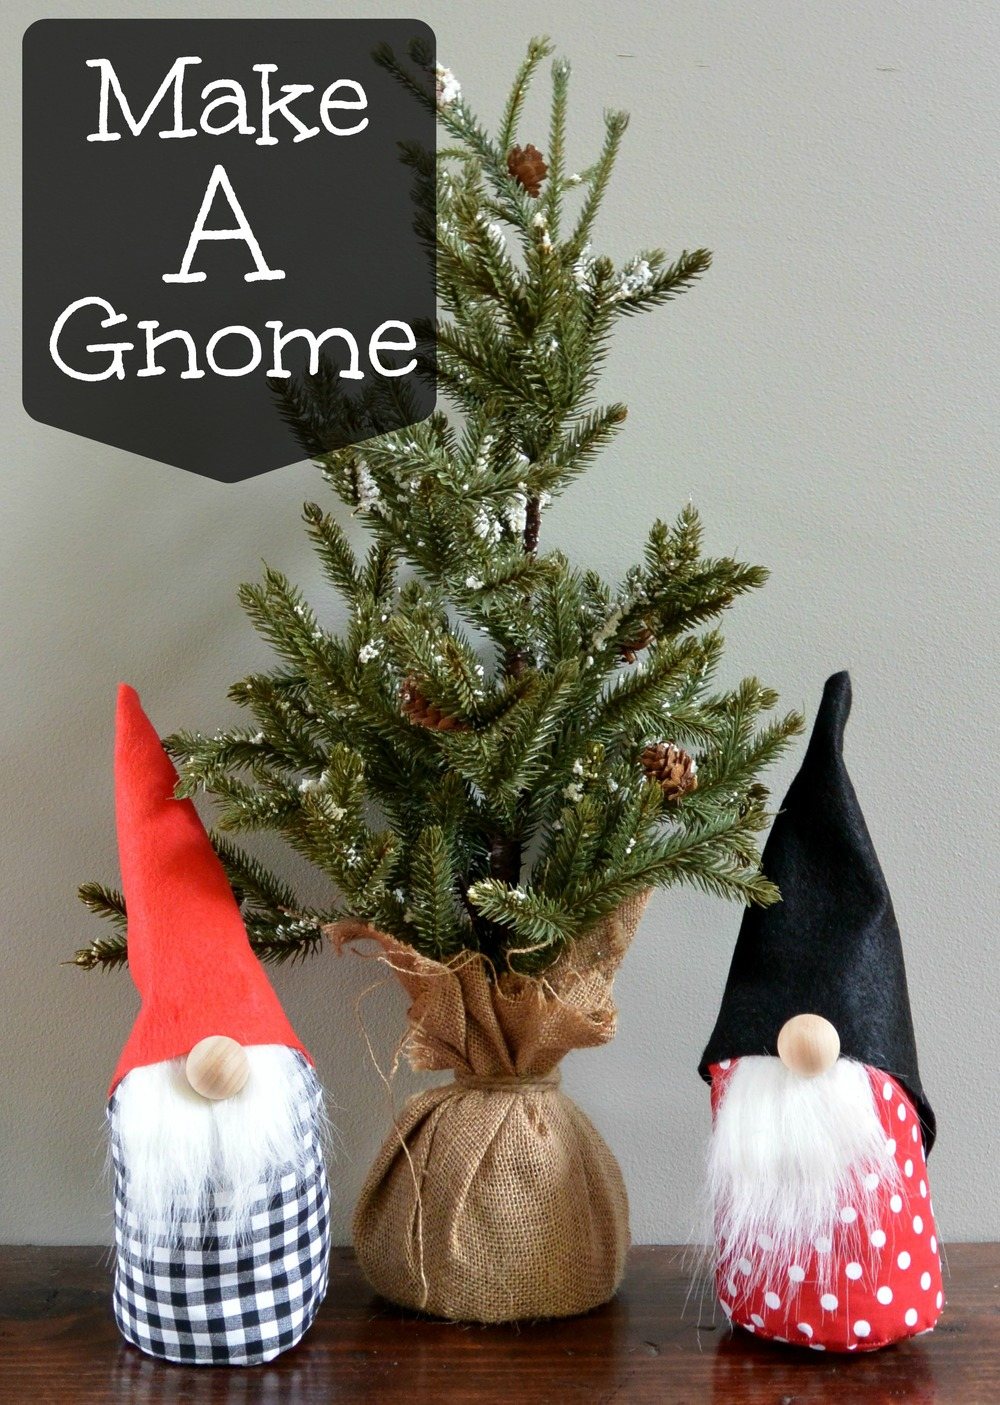 How to Make a Gnome